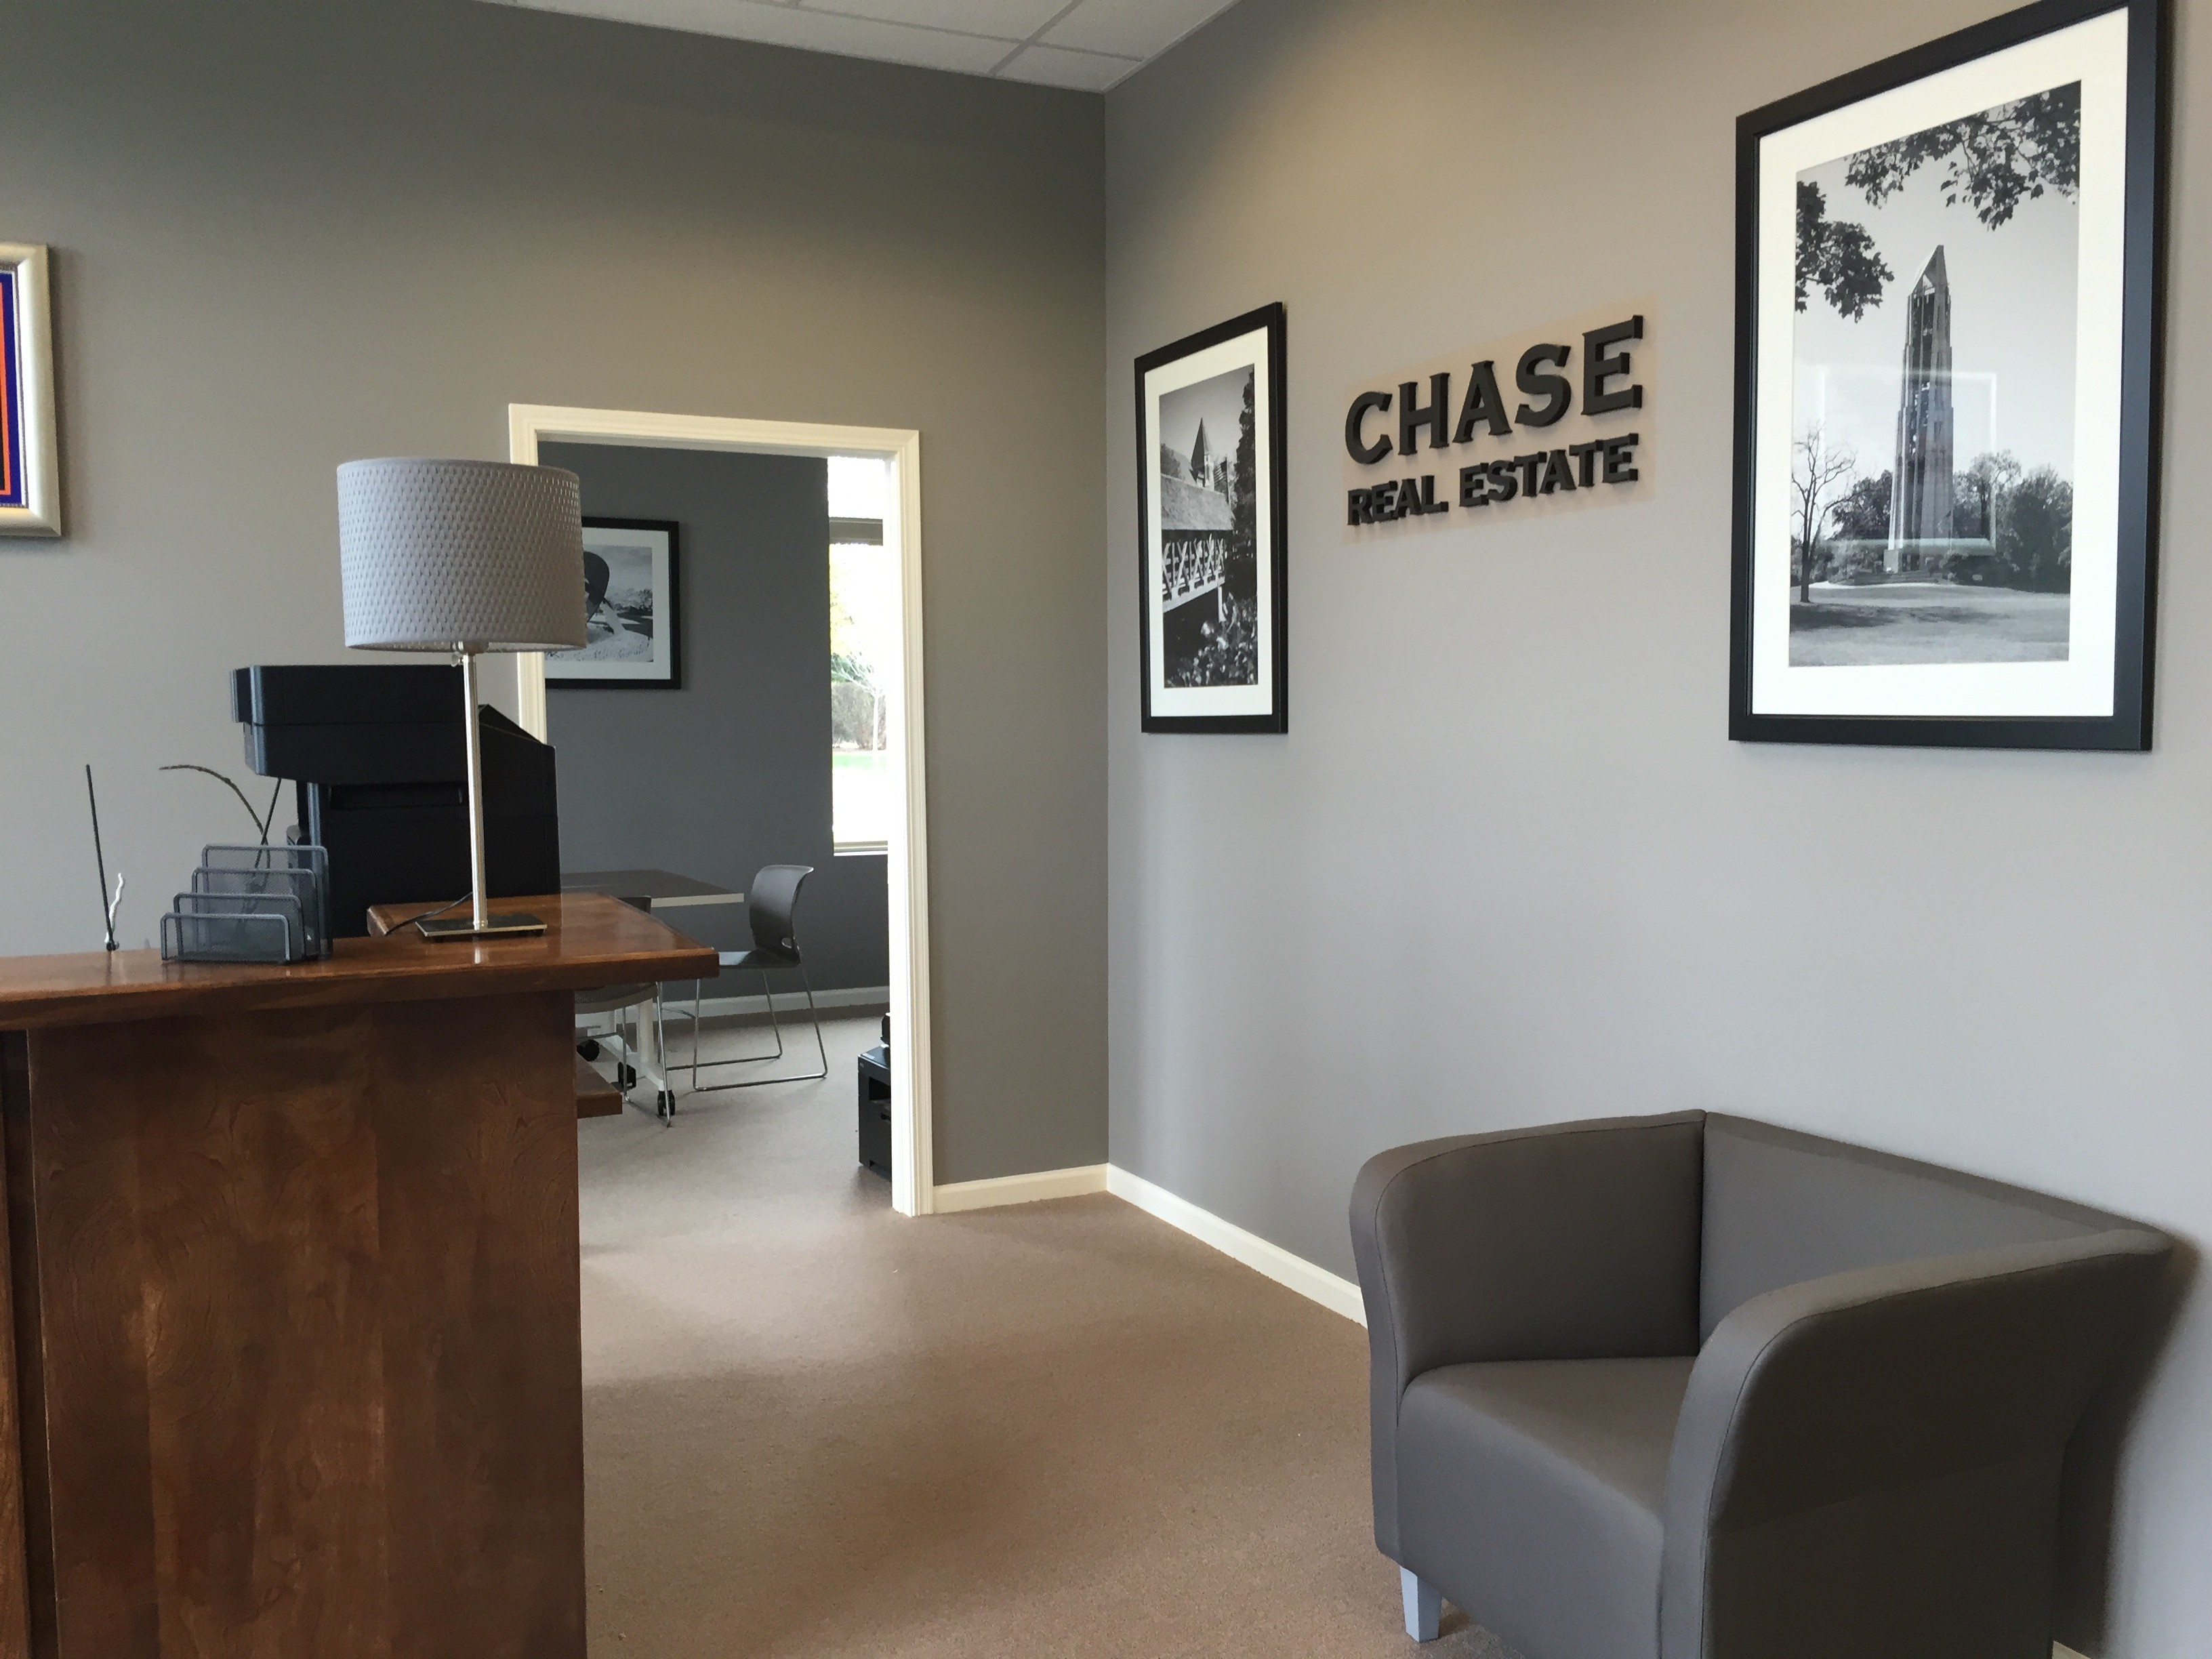 chase real estate office remodel